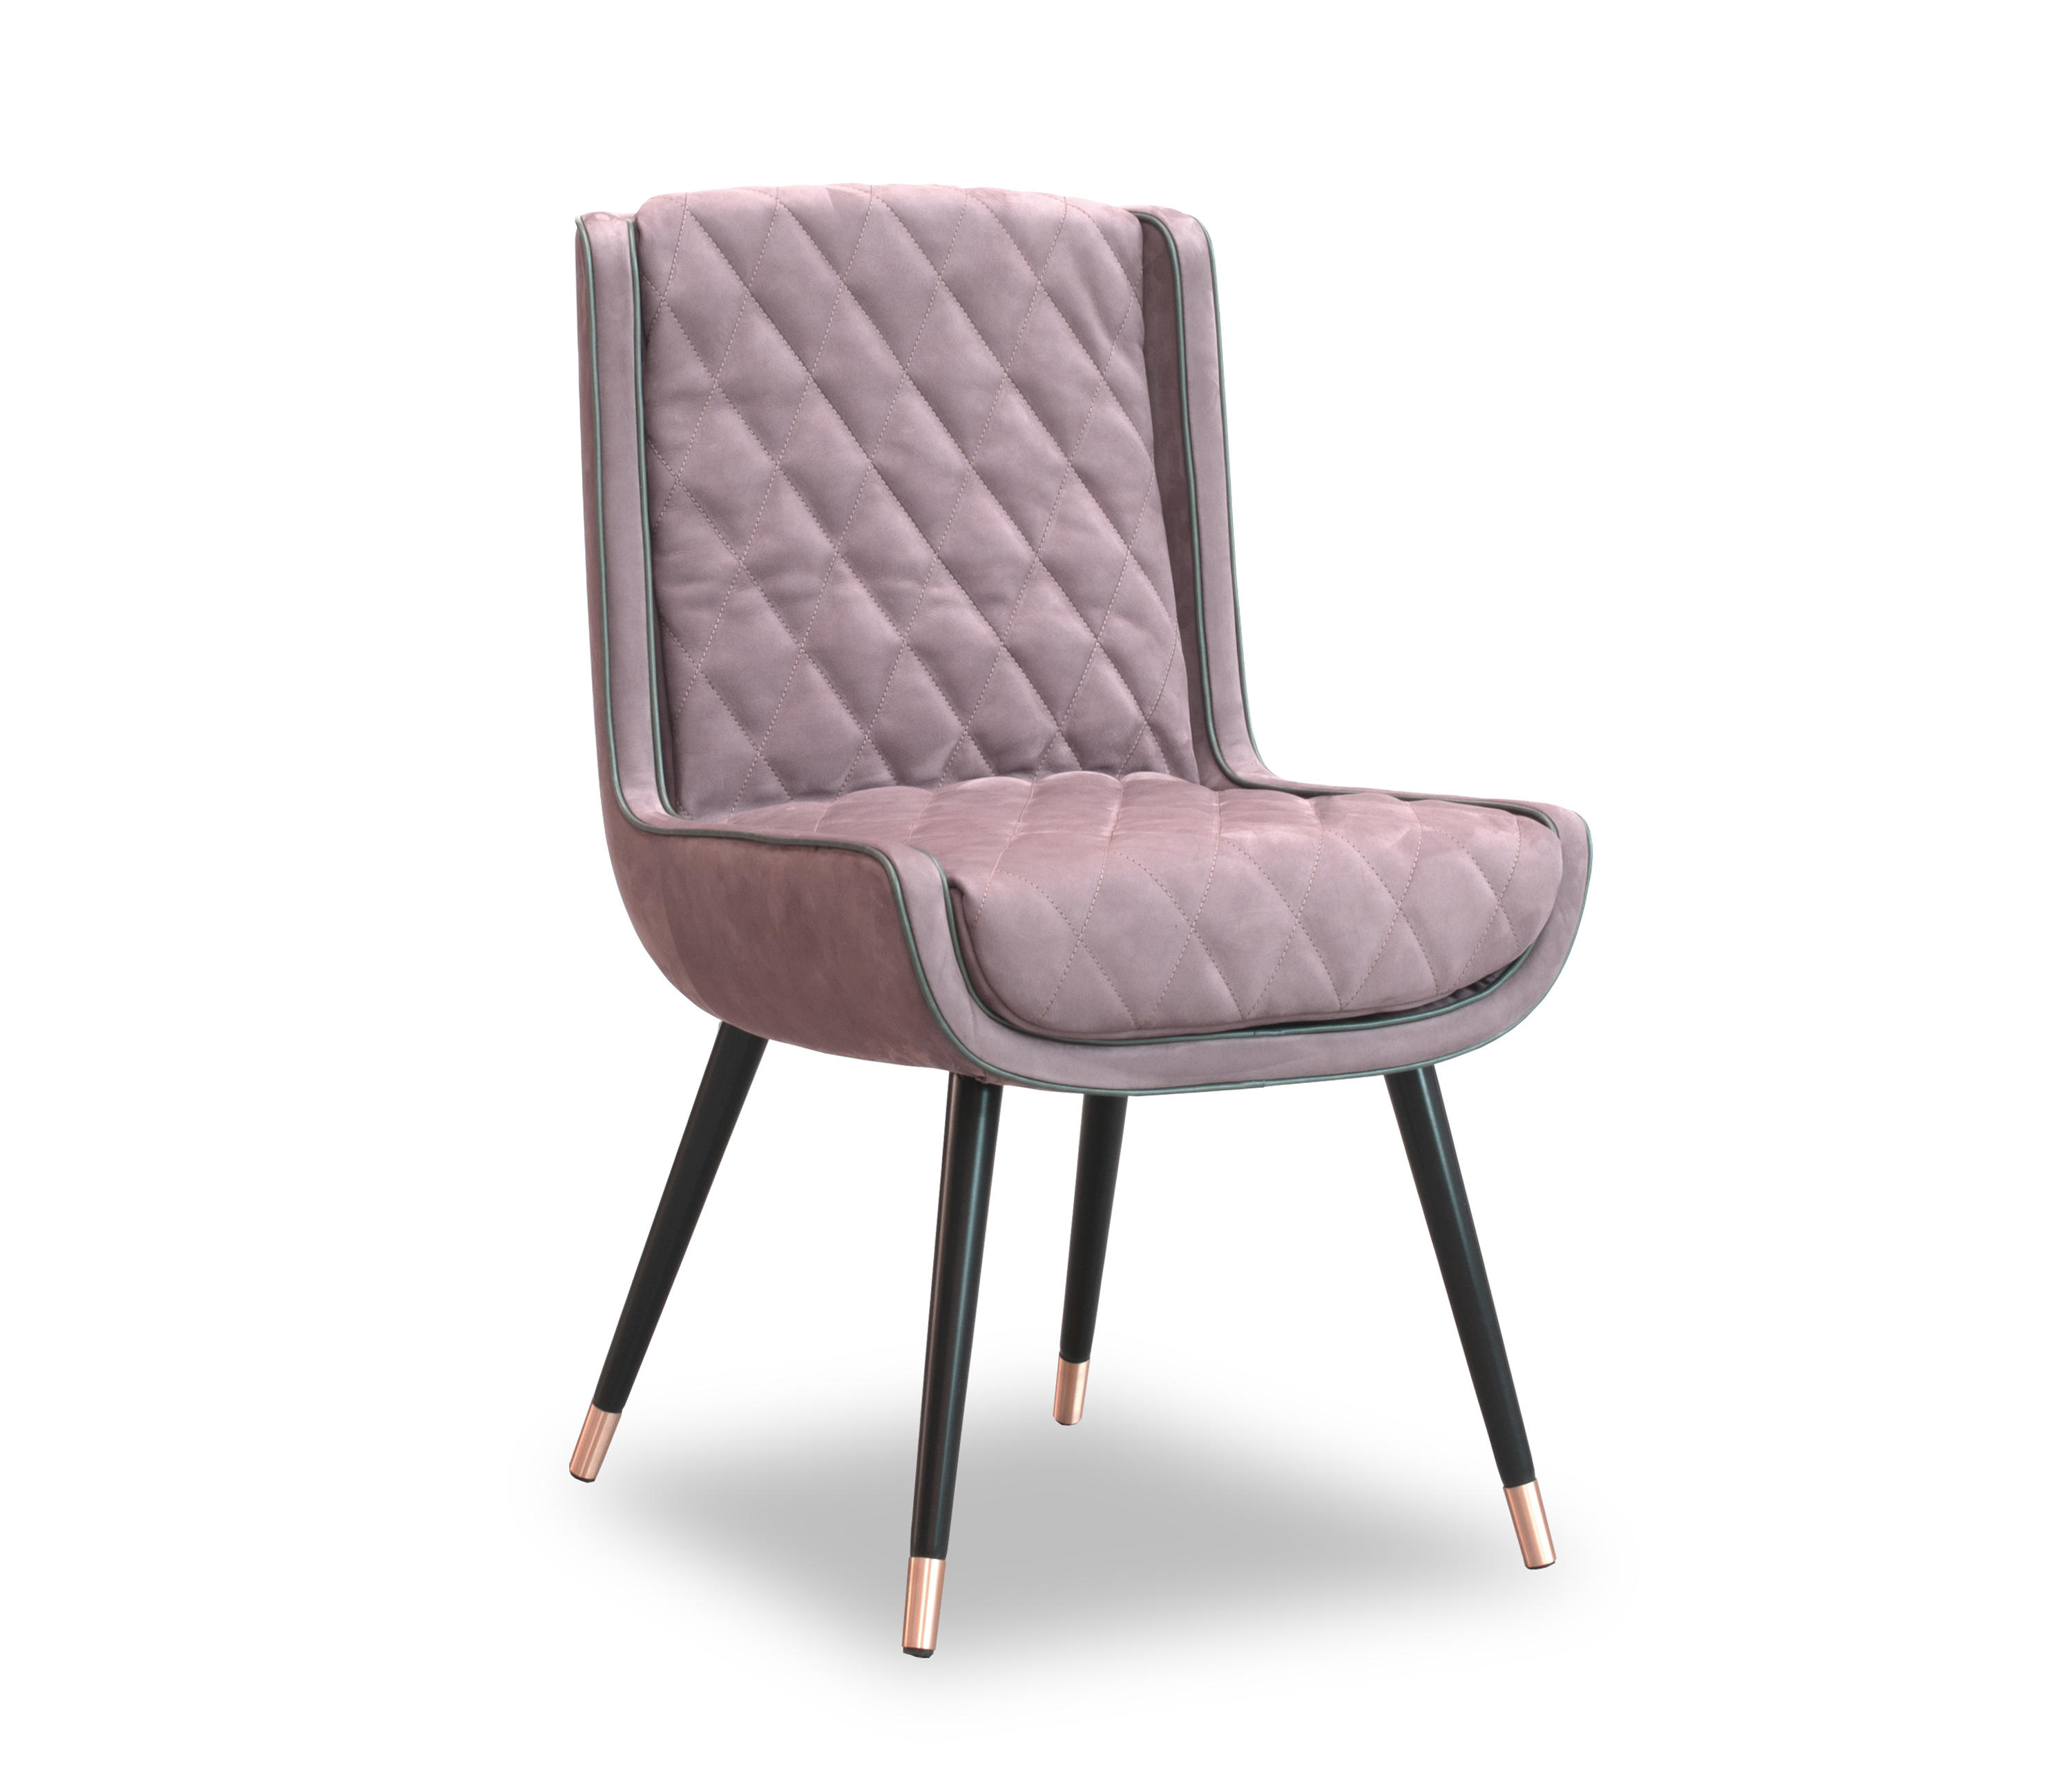 Dolly Baby Chair Chairs From Baxter Architonic